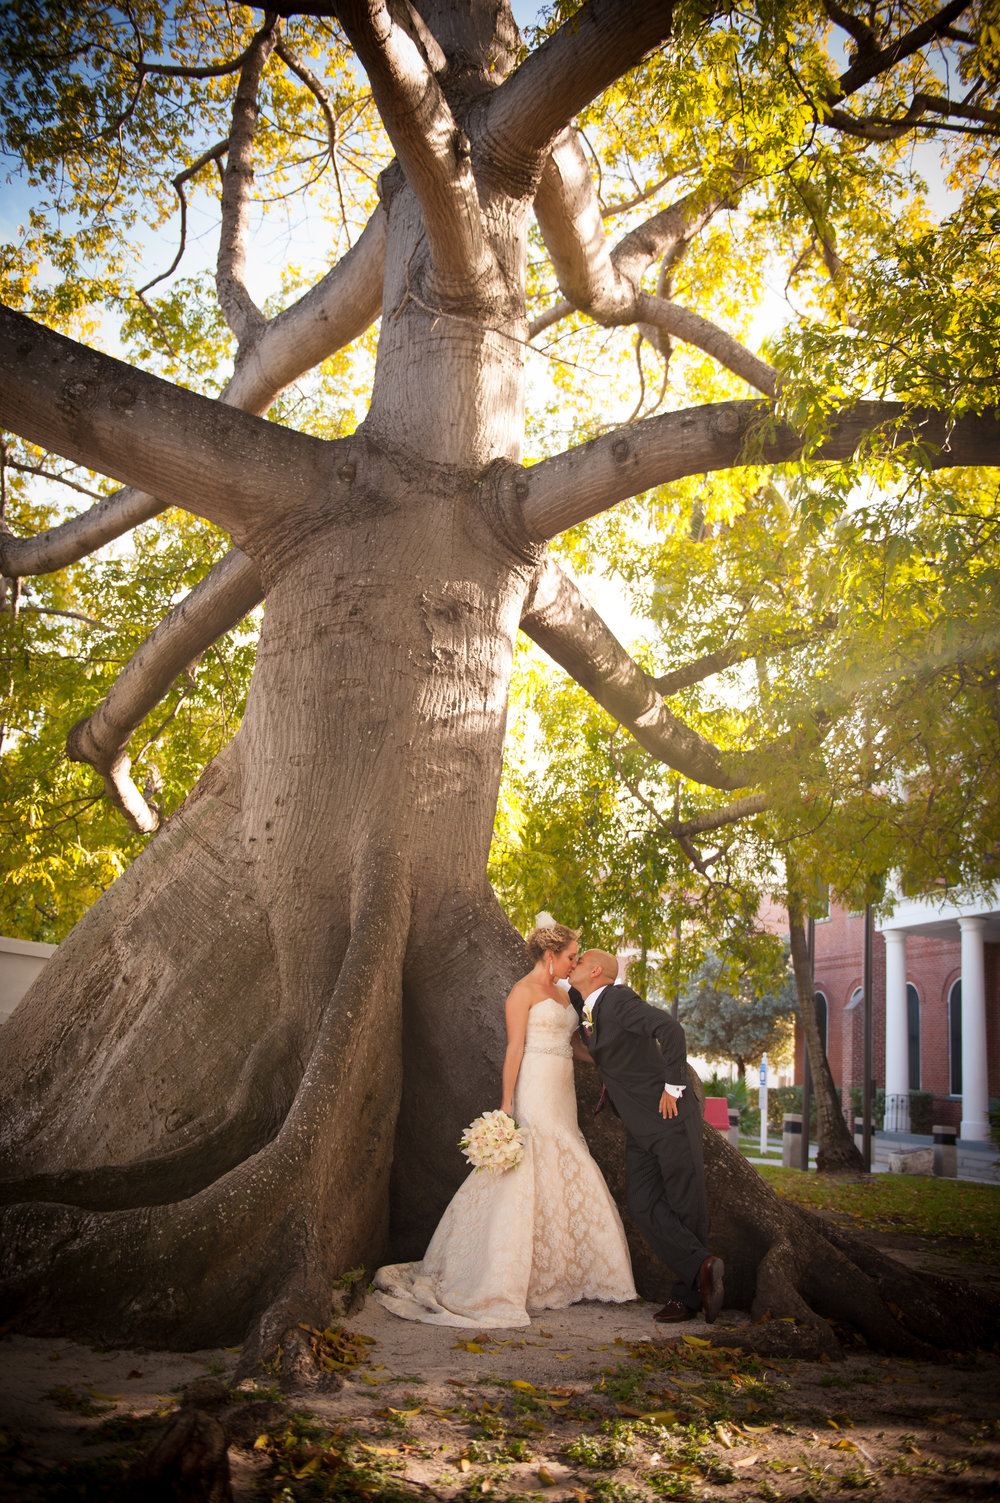 Sarah & Hani {Real Wedding}| Just Save the Date| Photo Credit: MEC Images